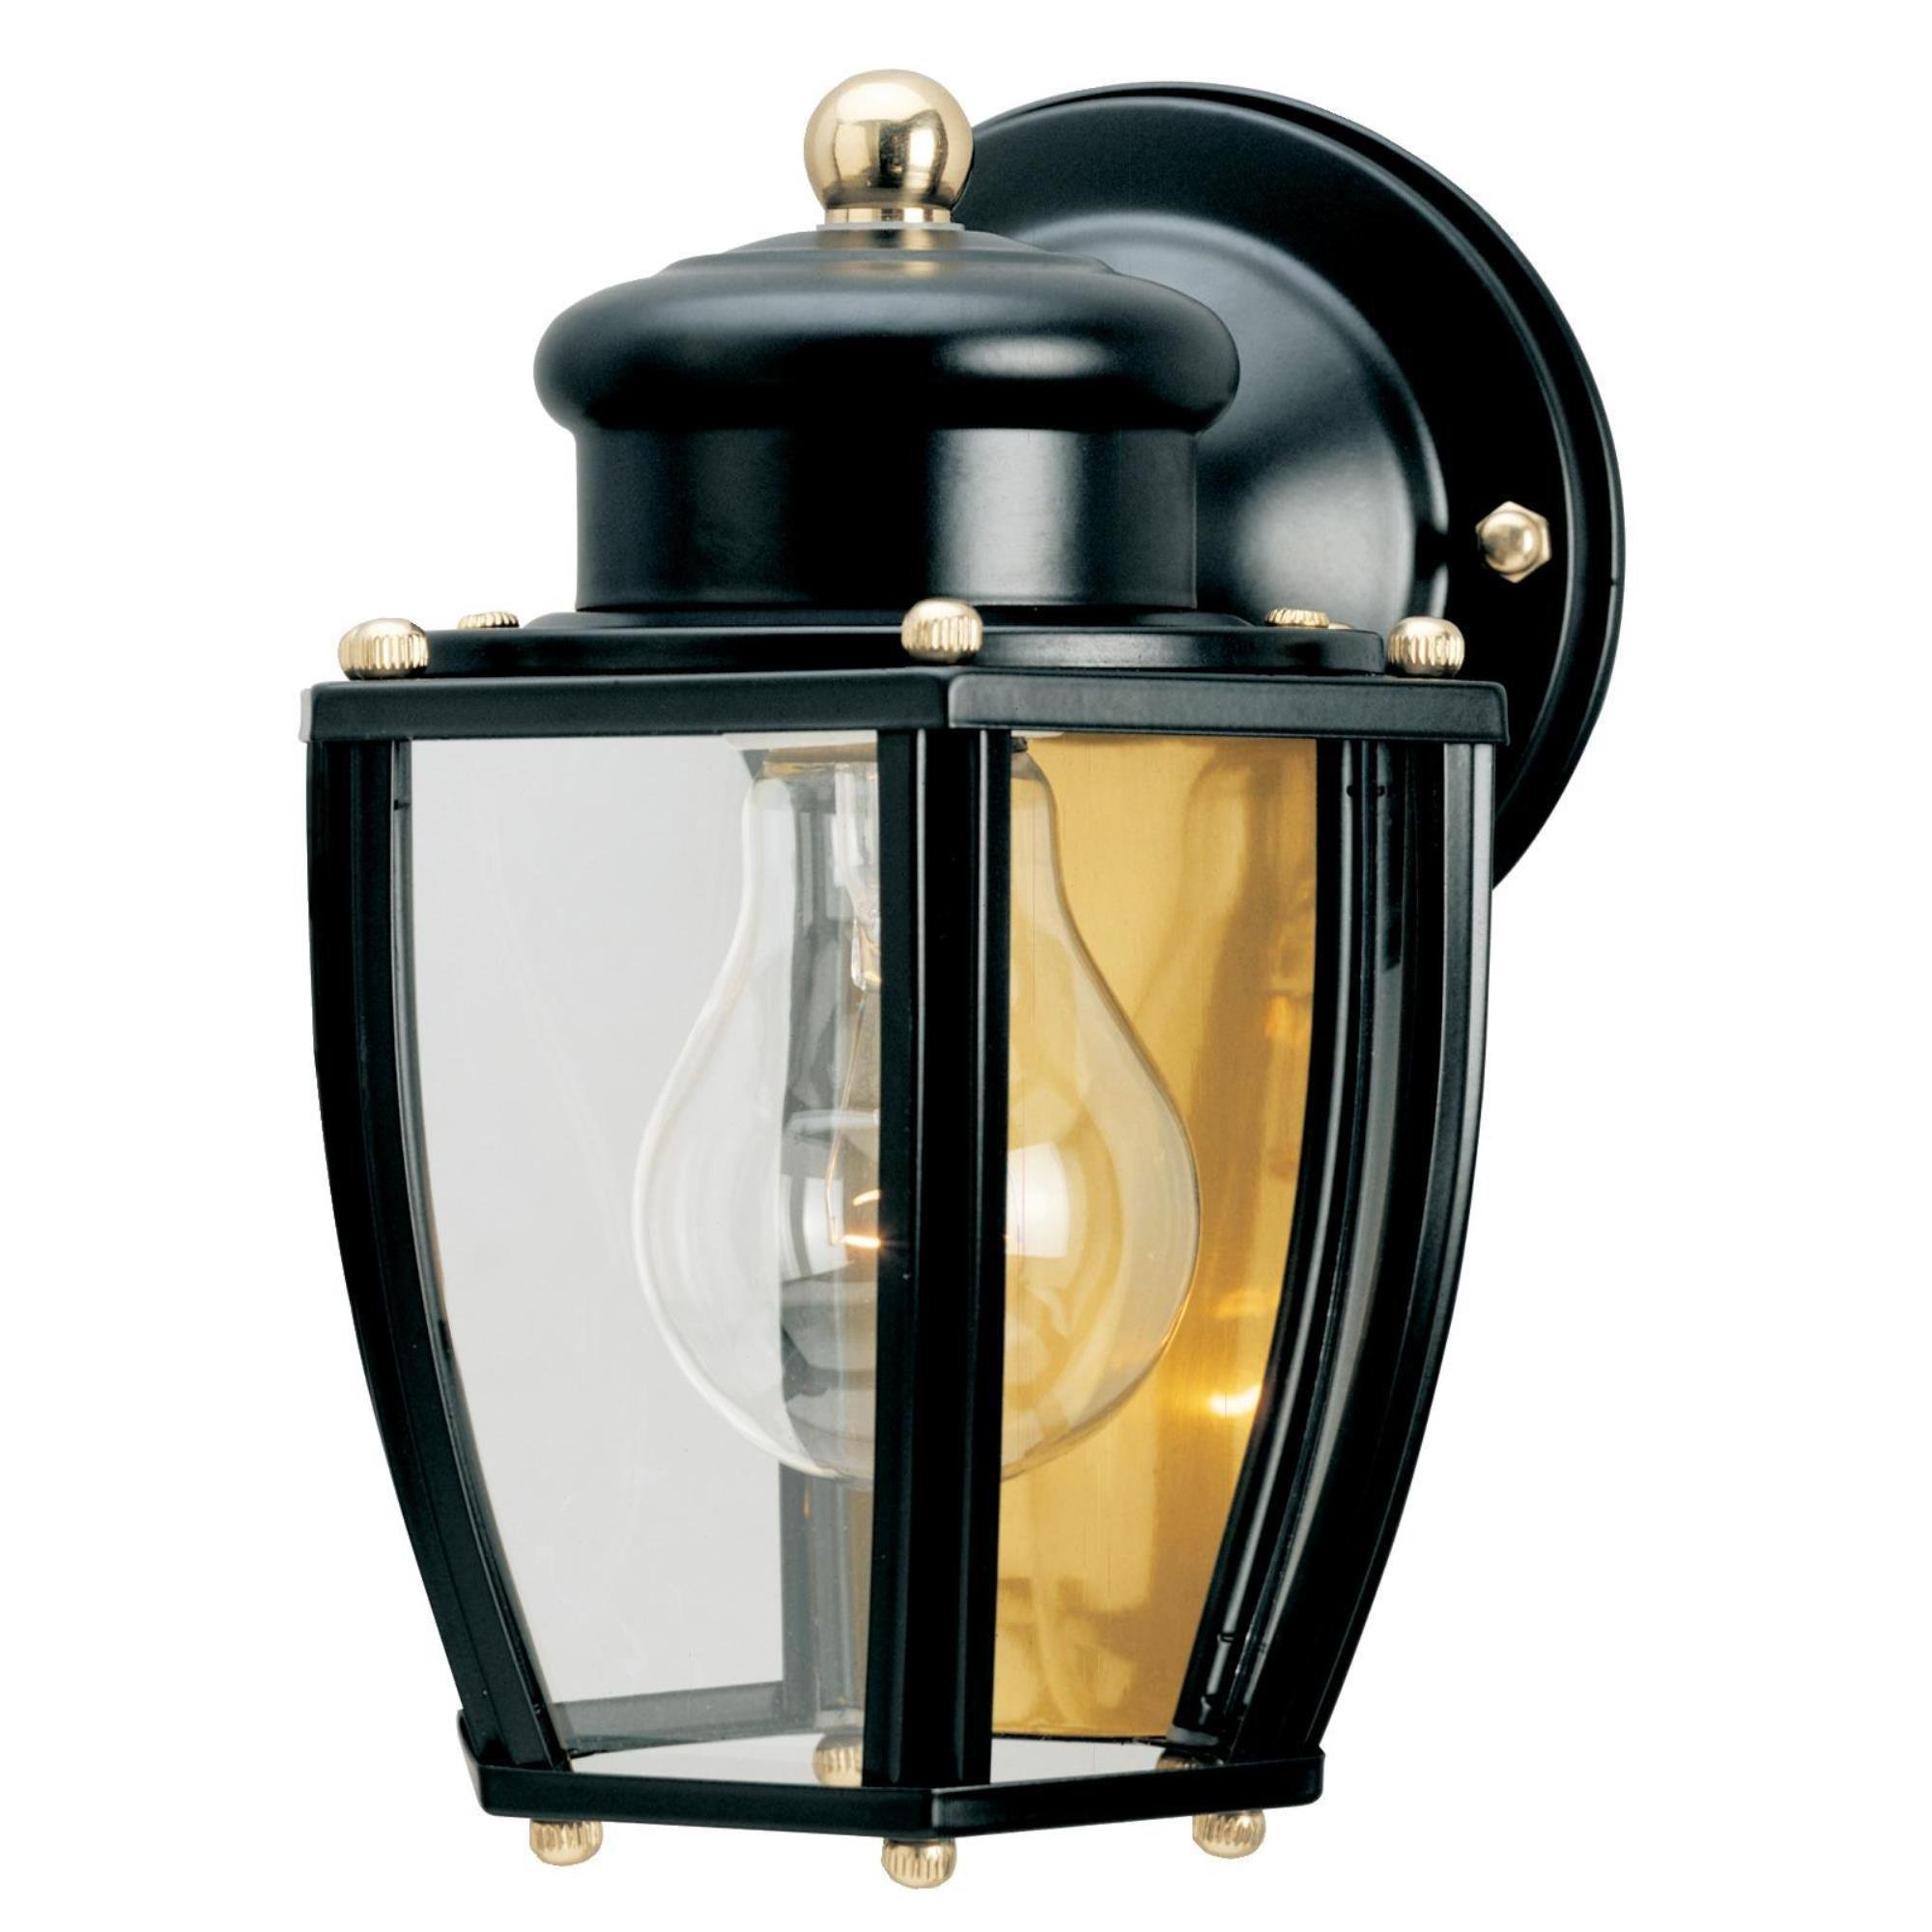 Westinghouse 6696100 One-Light Exterior Wall Lantern, Matte Black Finish on Steel with Clear Curved Glass Panels